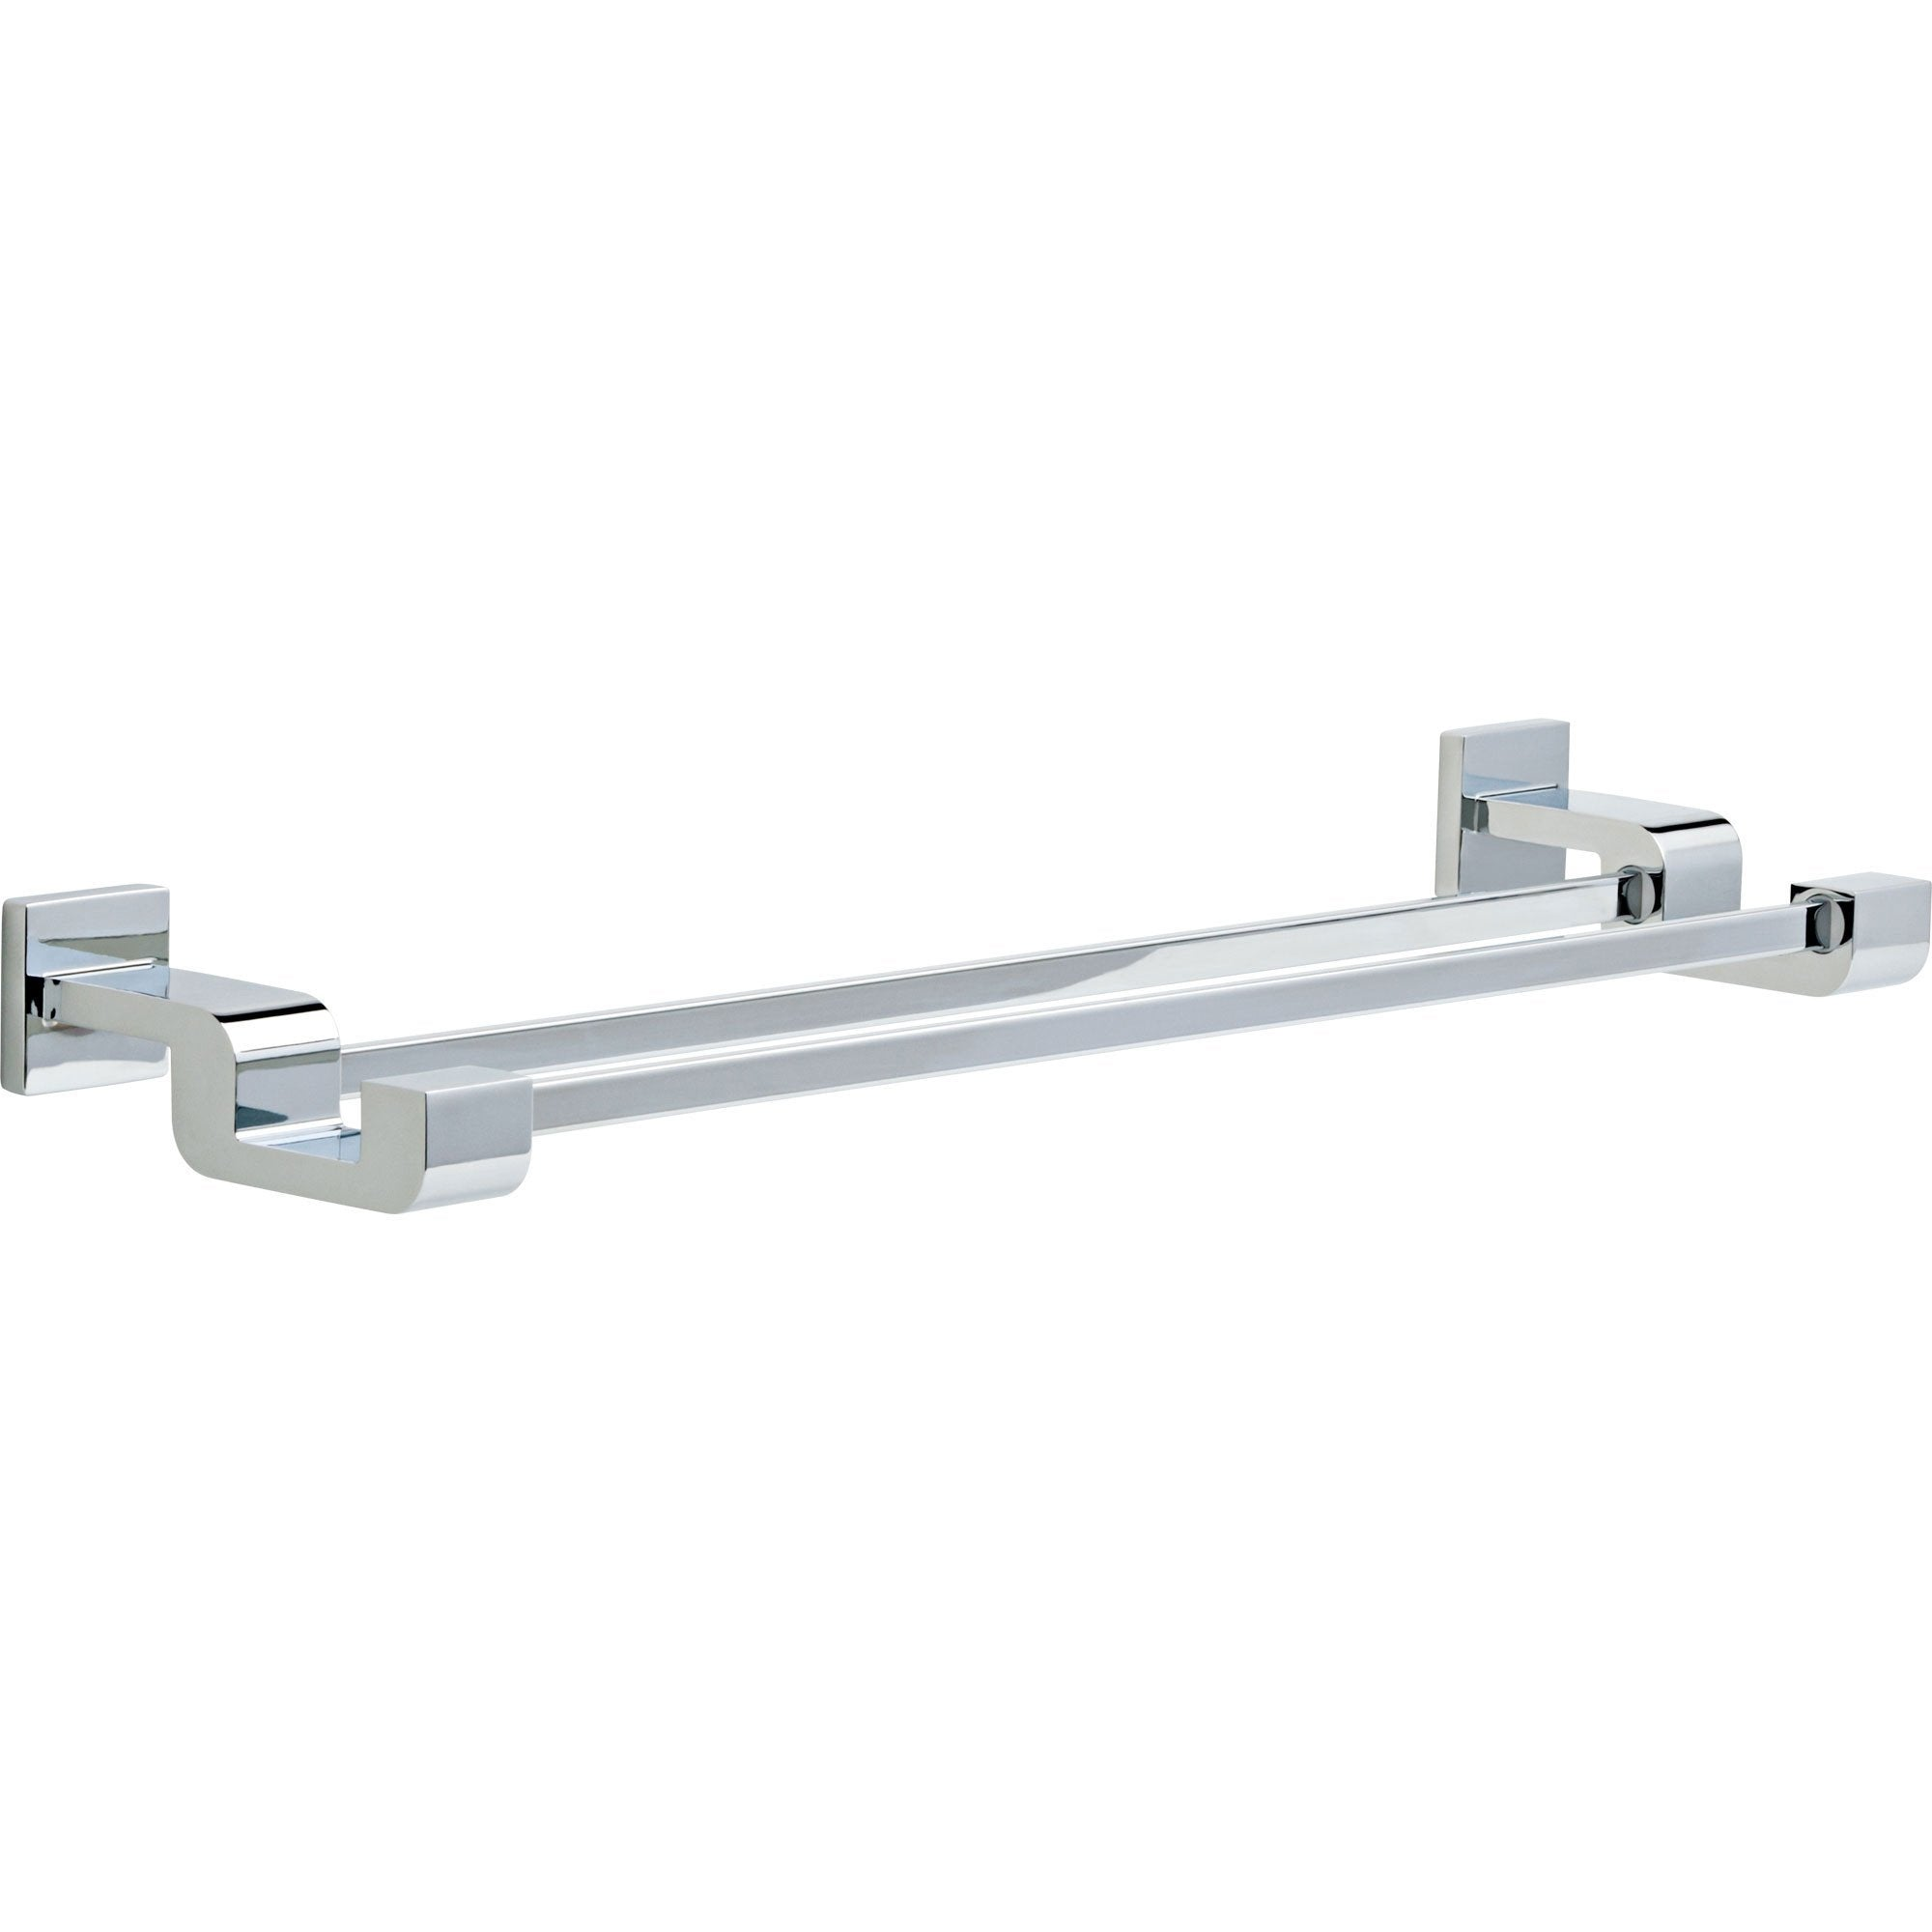 Delta Arzo 24 inch Modern Chrome Double Towel Bar 638718